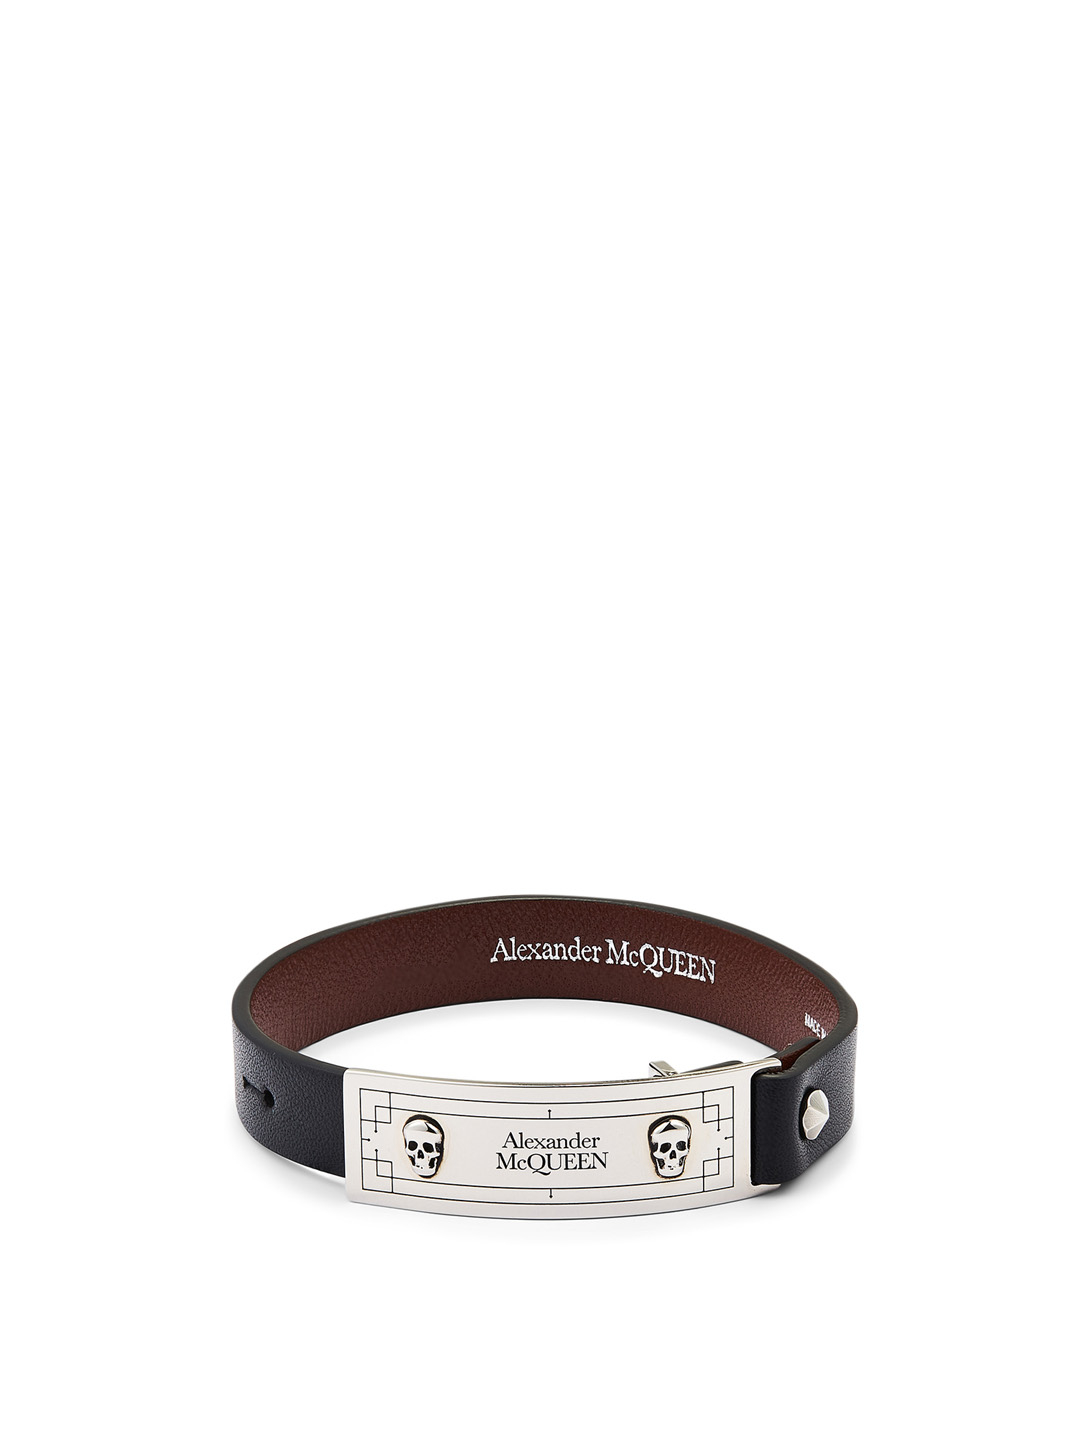 ALEXANDER MCQUEEN Leather Identity Bracelet Men's Black